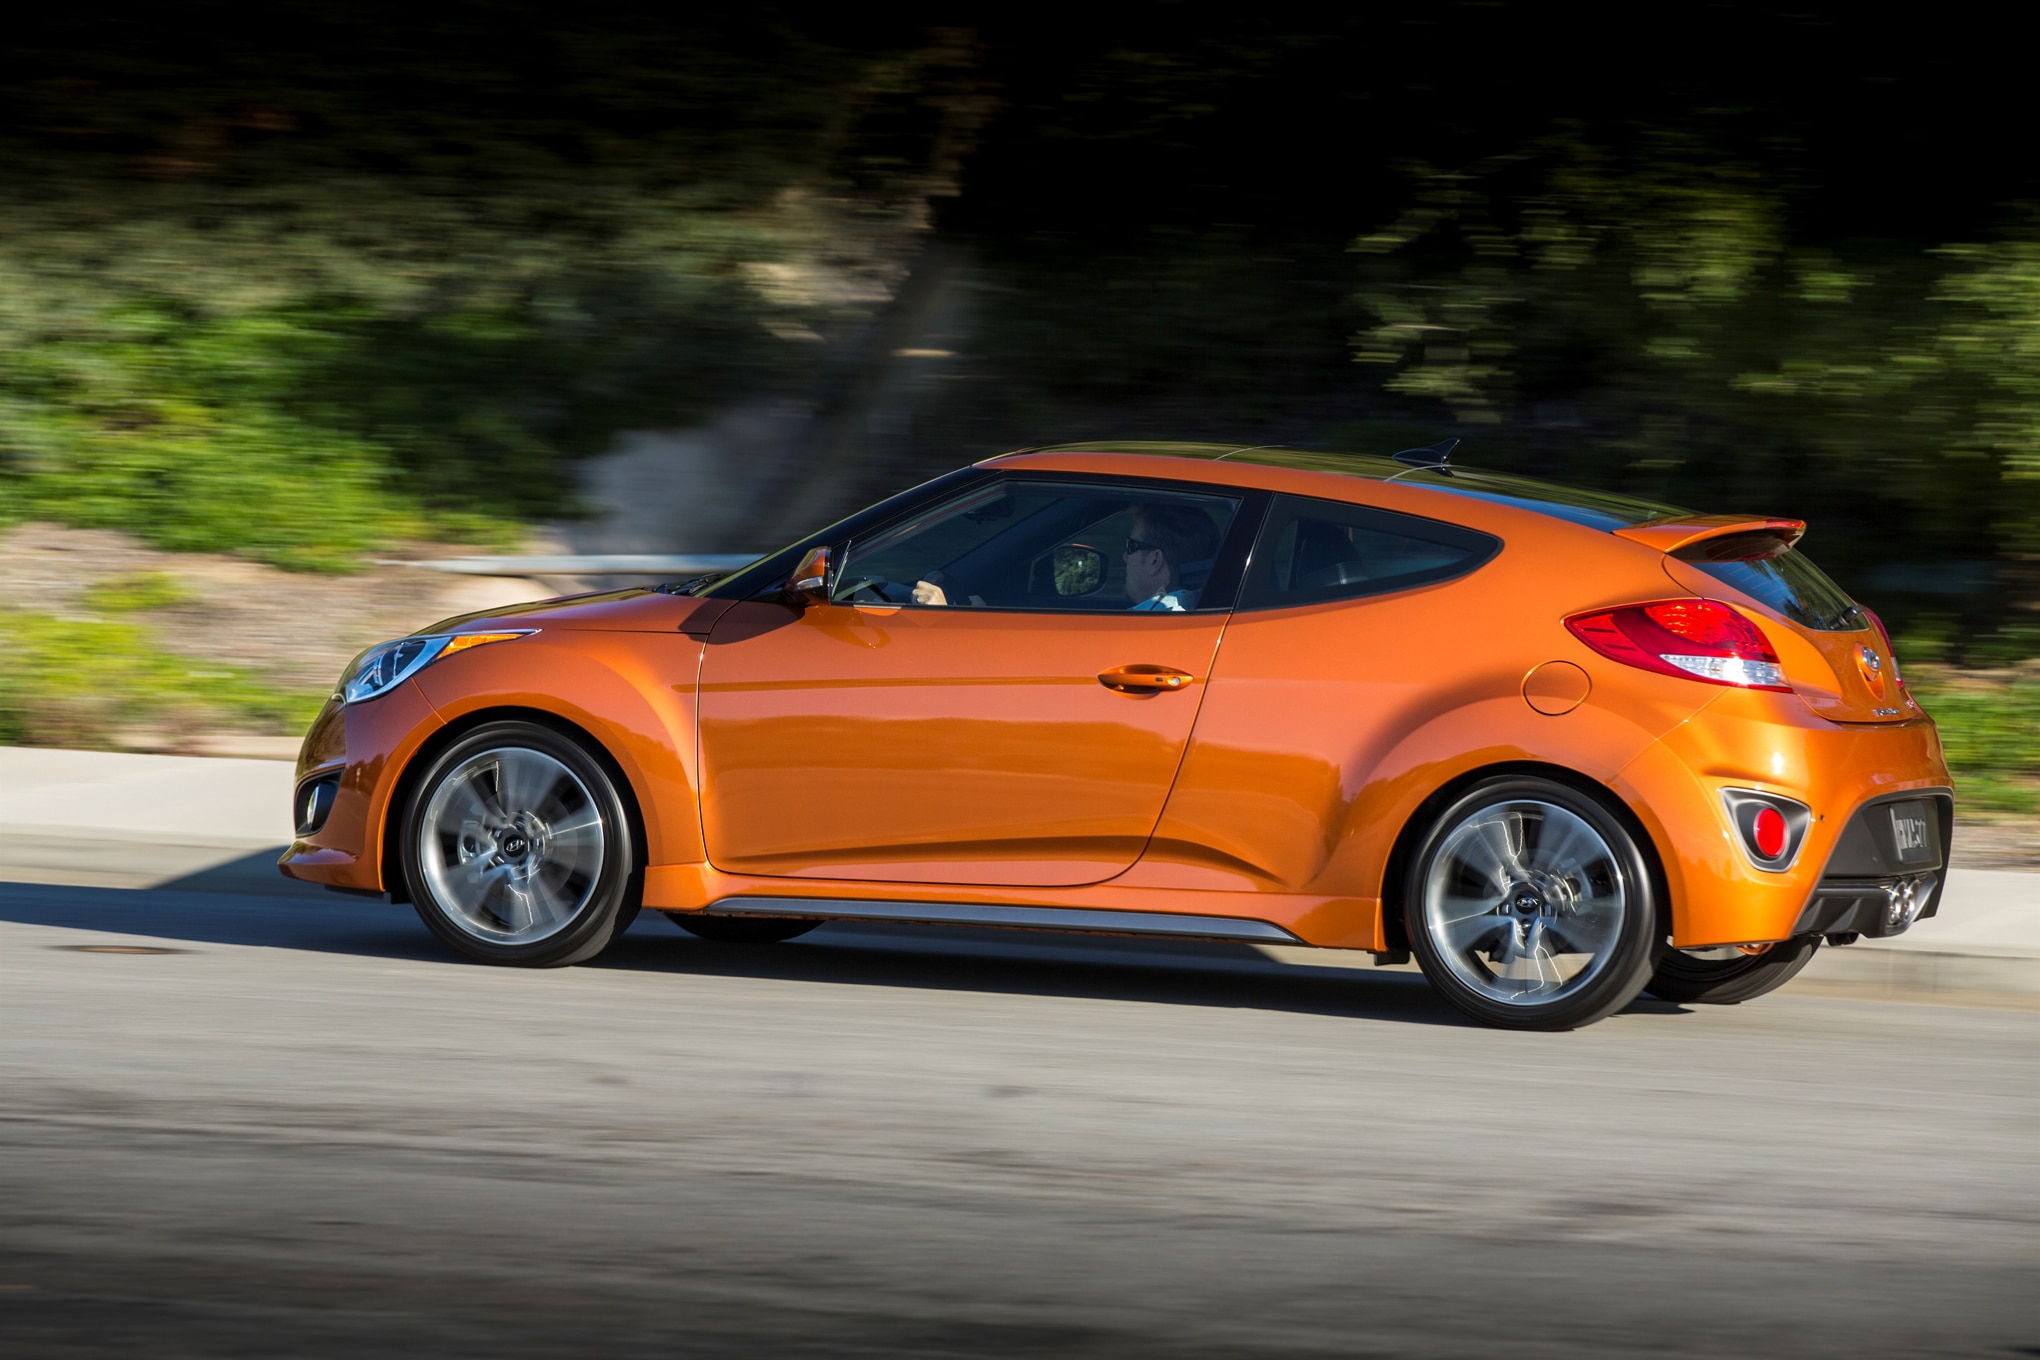 2018 Hyundai Veloster Spec >> 2016 Hyundai Veloster Turbo Unveiled in Chicago with New 7 ...